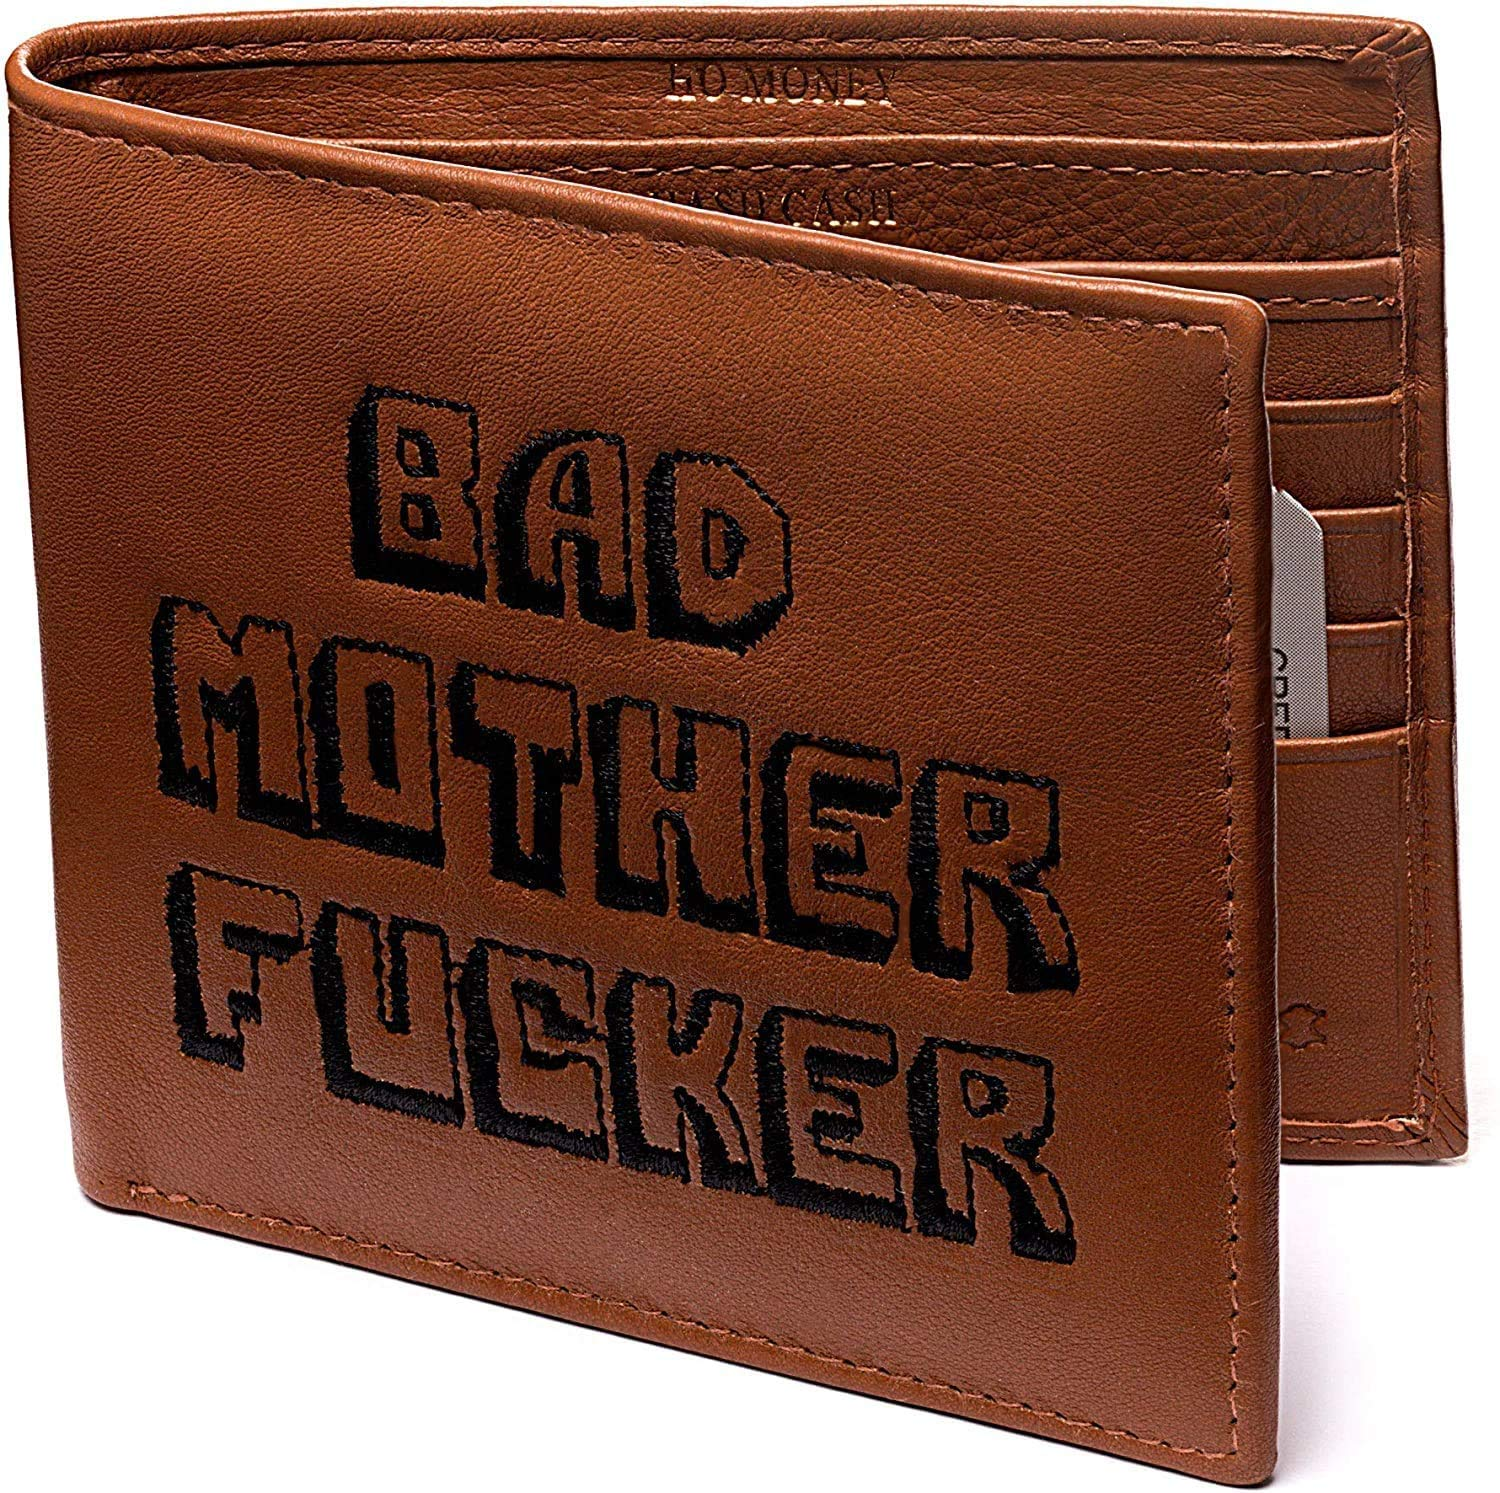 Bad Mother Fucker Wallet, Embroidered Lettering, Real Leather